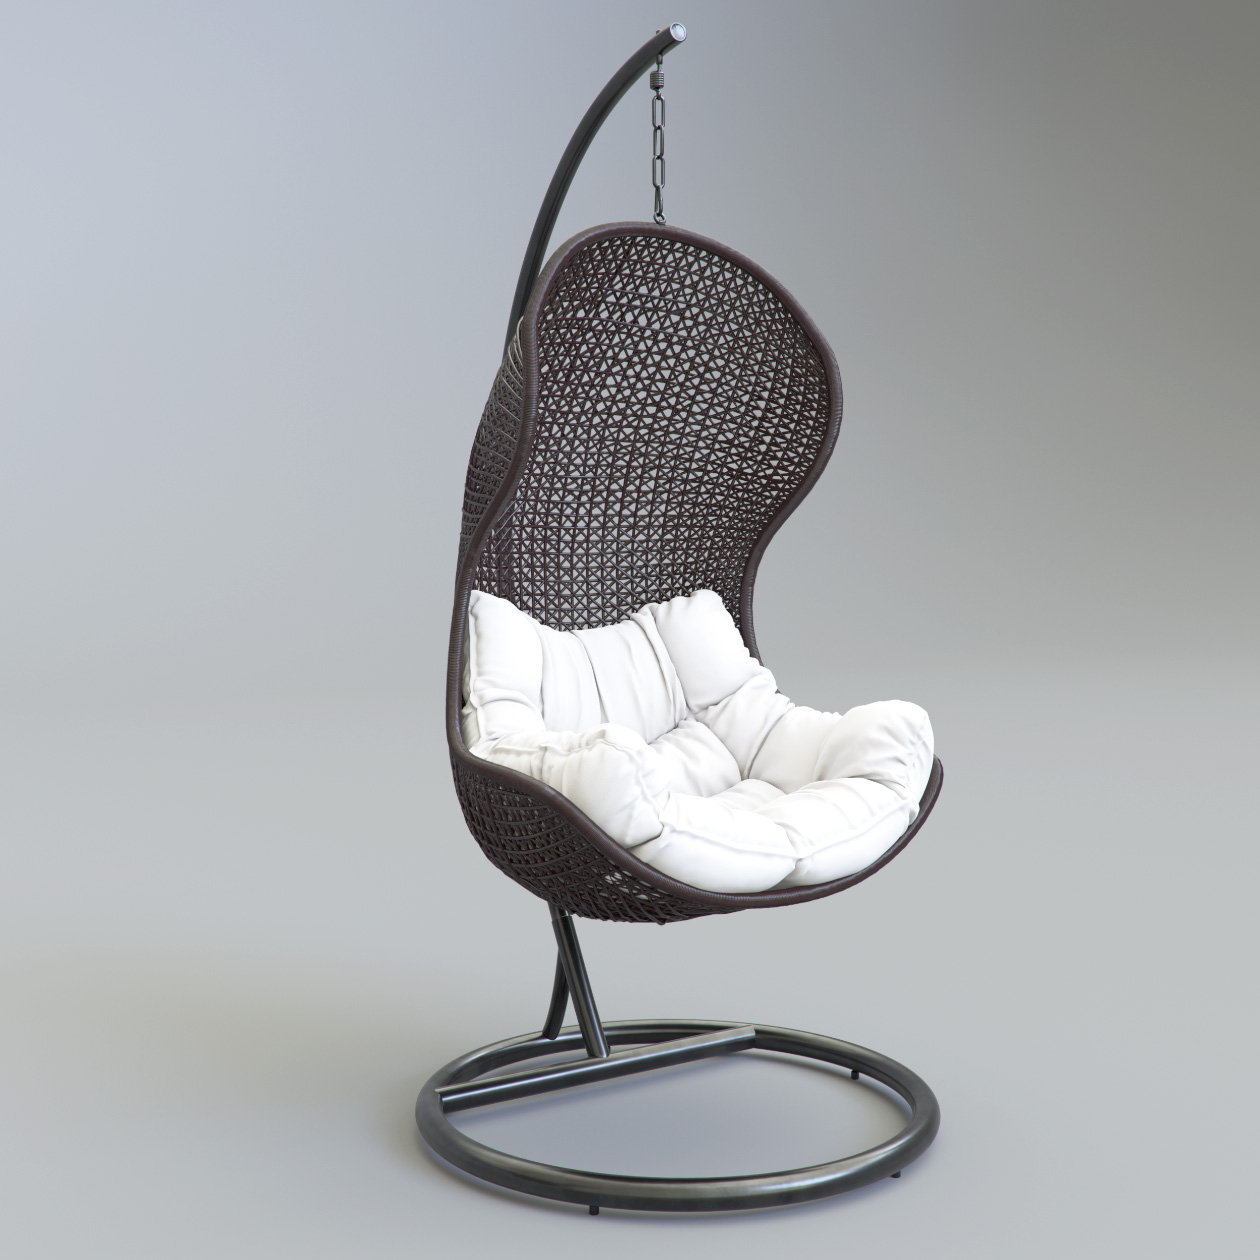 Parlay Chair 3D Model perspective